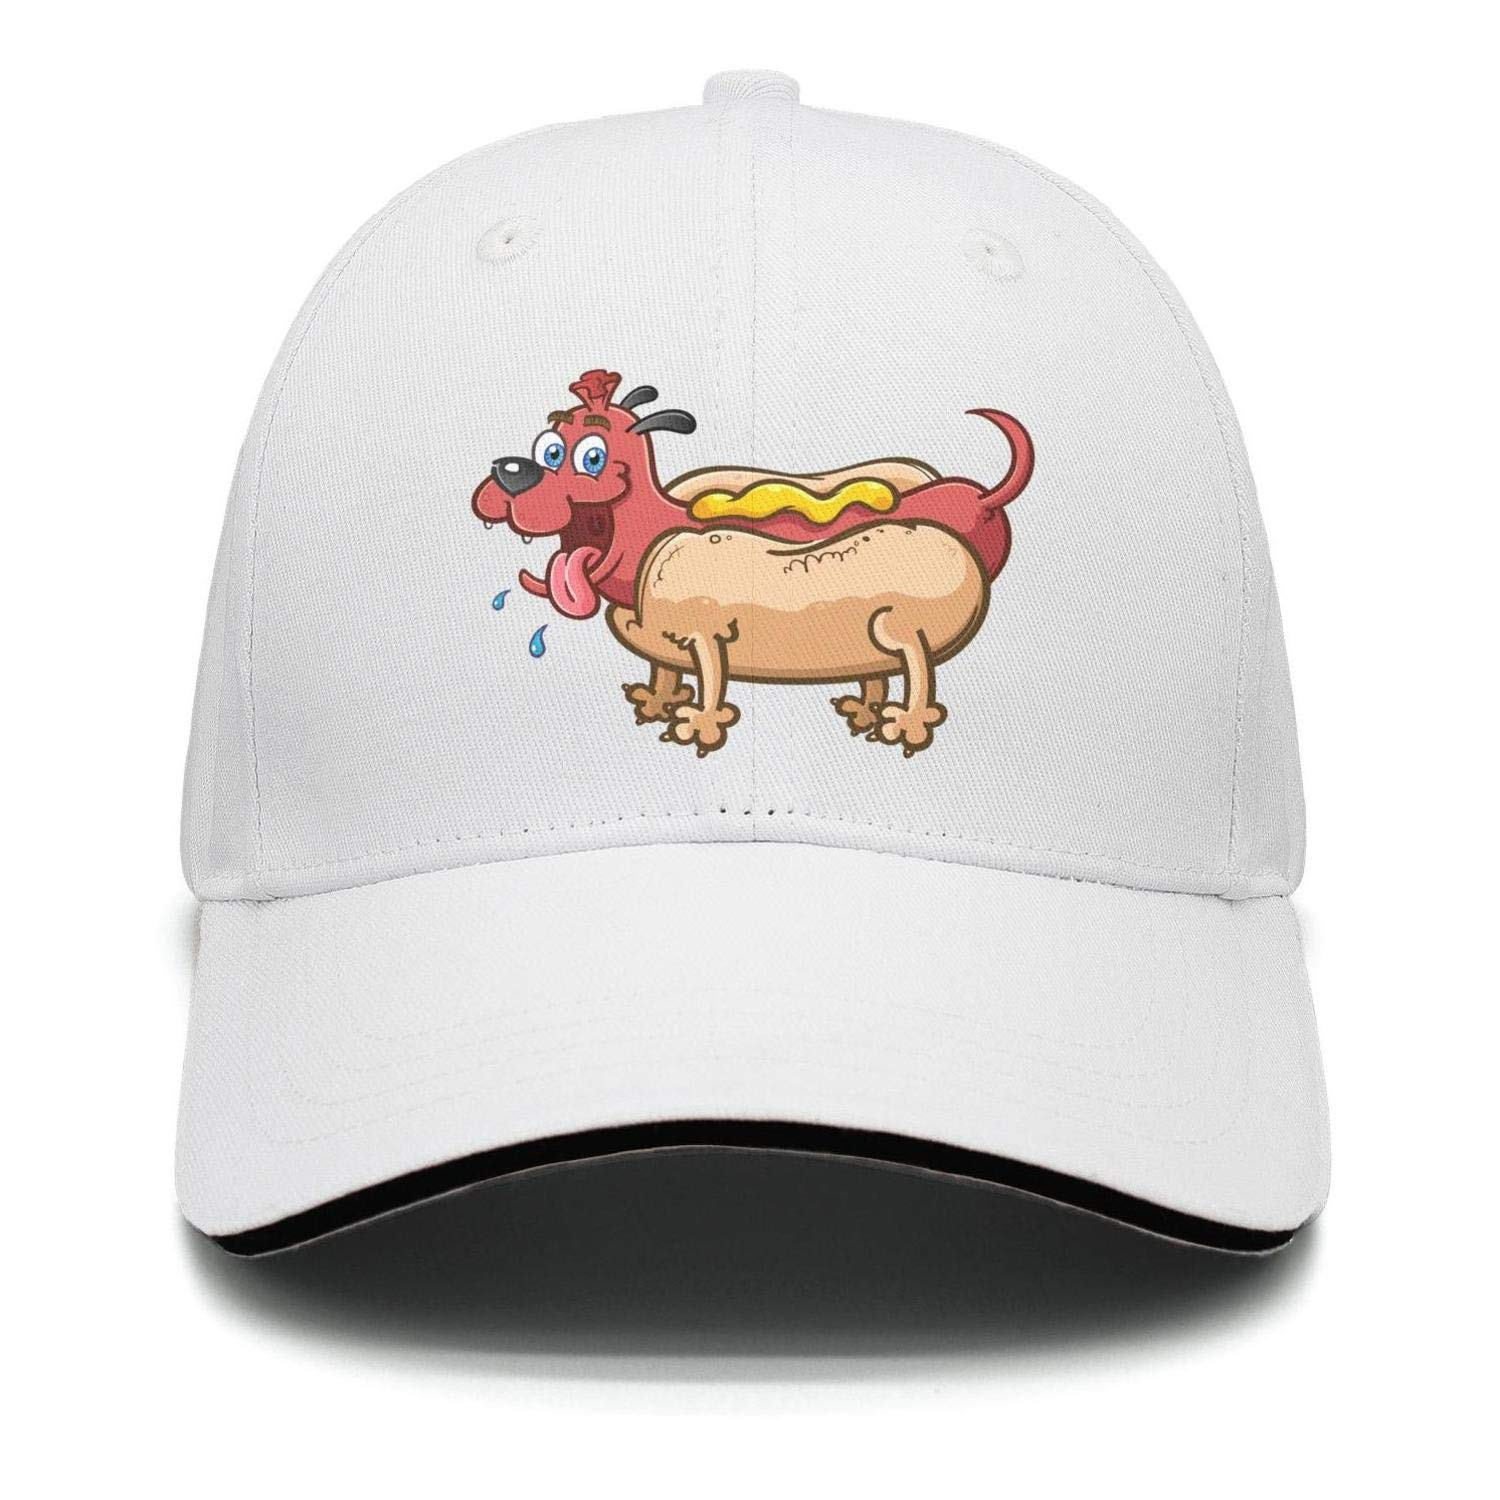 Unisex Happy Dachshund with a Hot Dog Baseball HatsBrim Adjustable Mesh Hats Caps